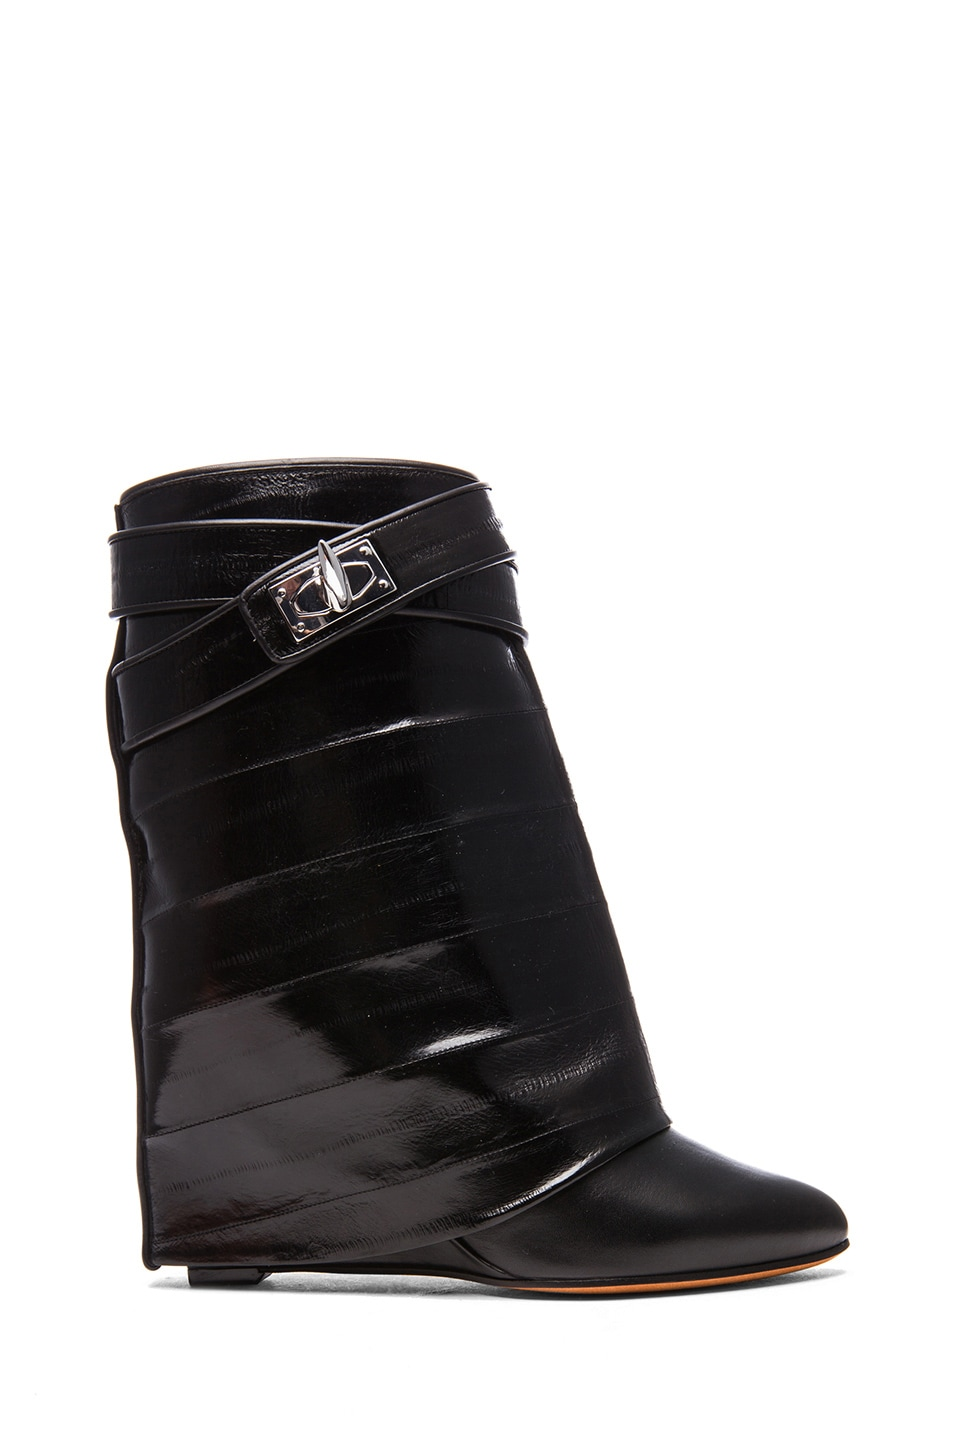 Image 1 of GIVENCHY Shark Lock Eelskin & Calfskin Leather Boots in Black